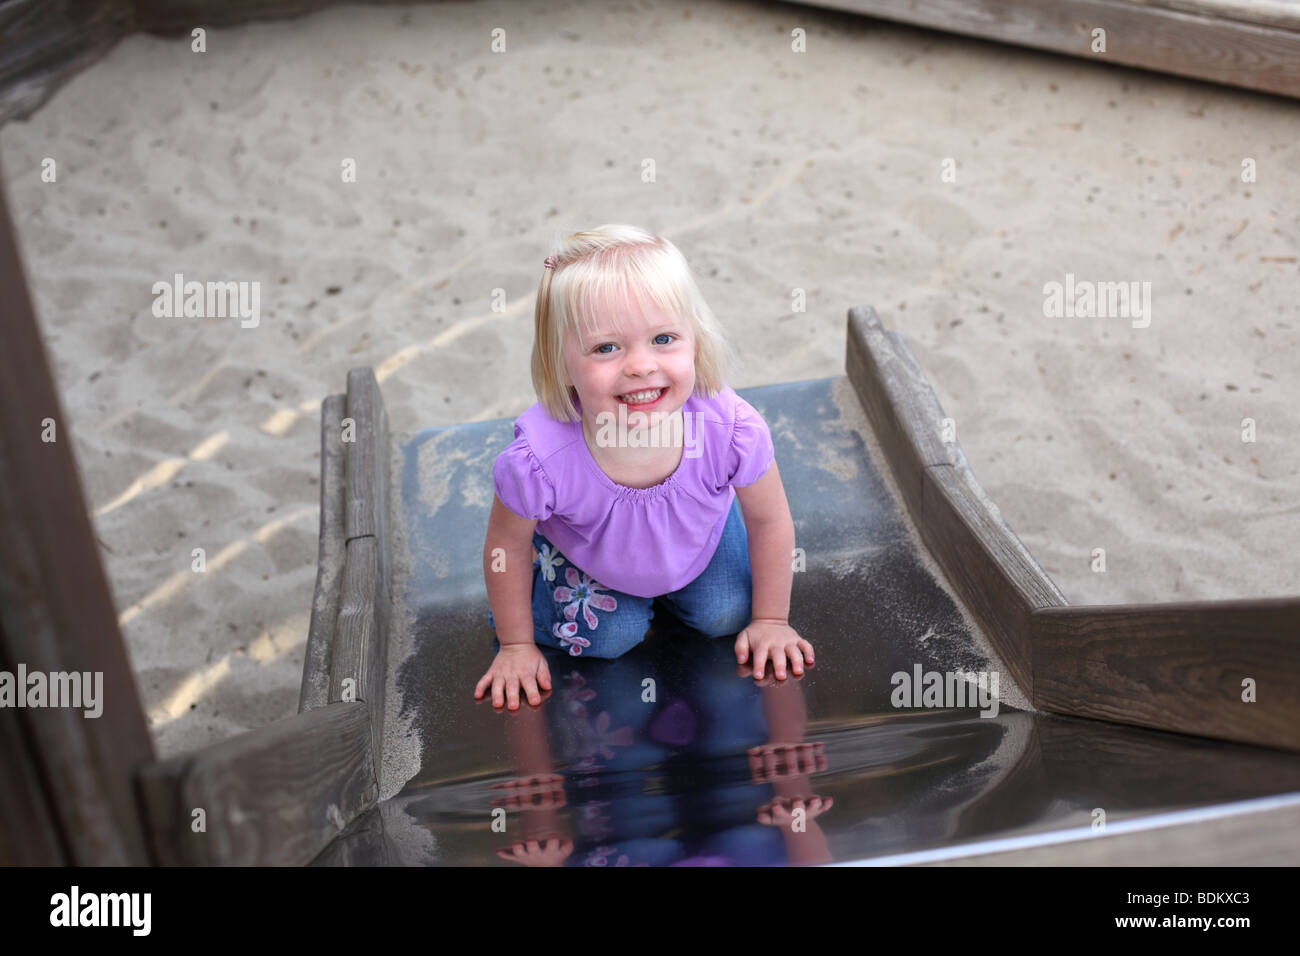 Young girl on slide smiling - Stock Image